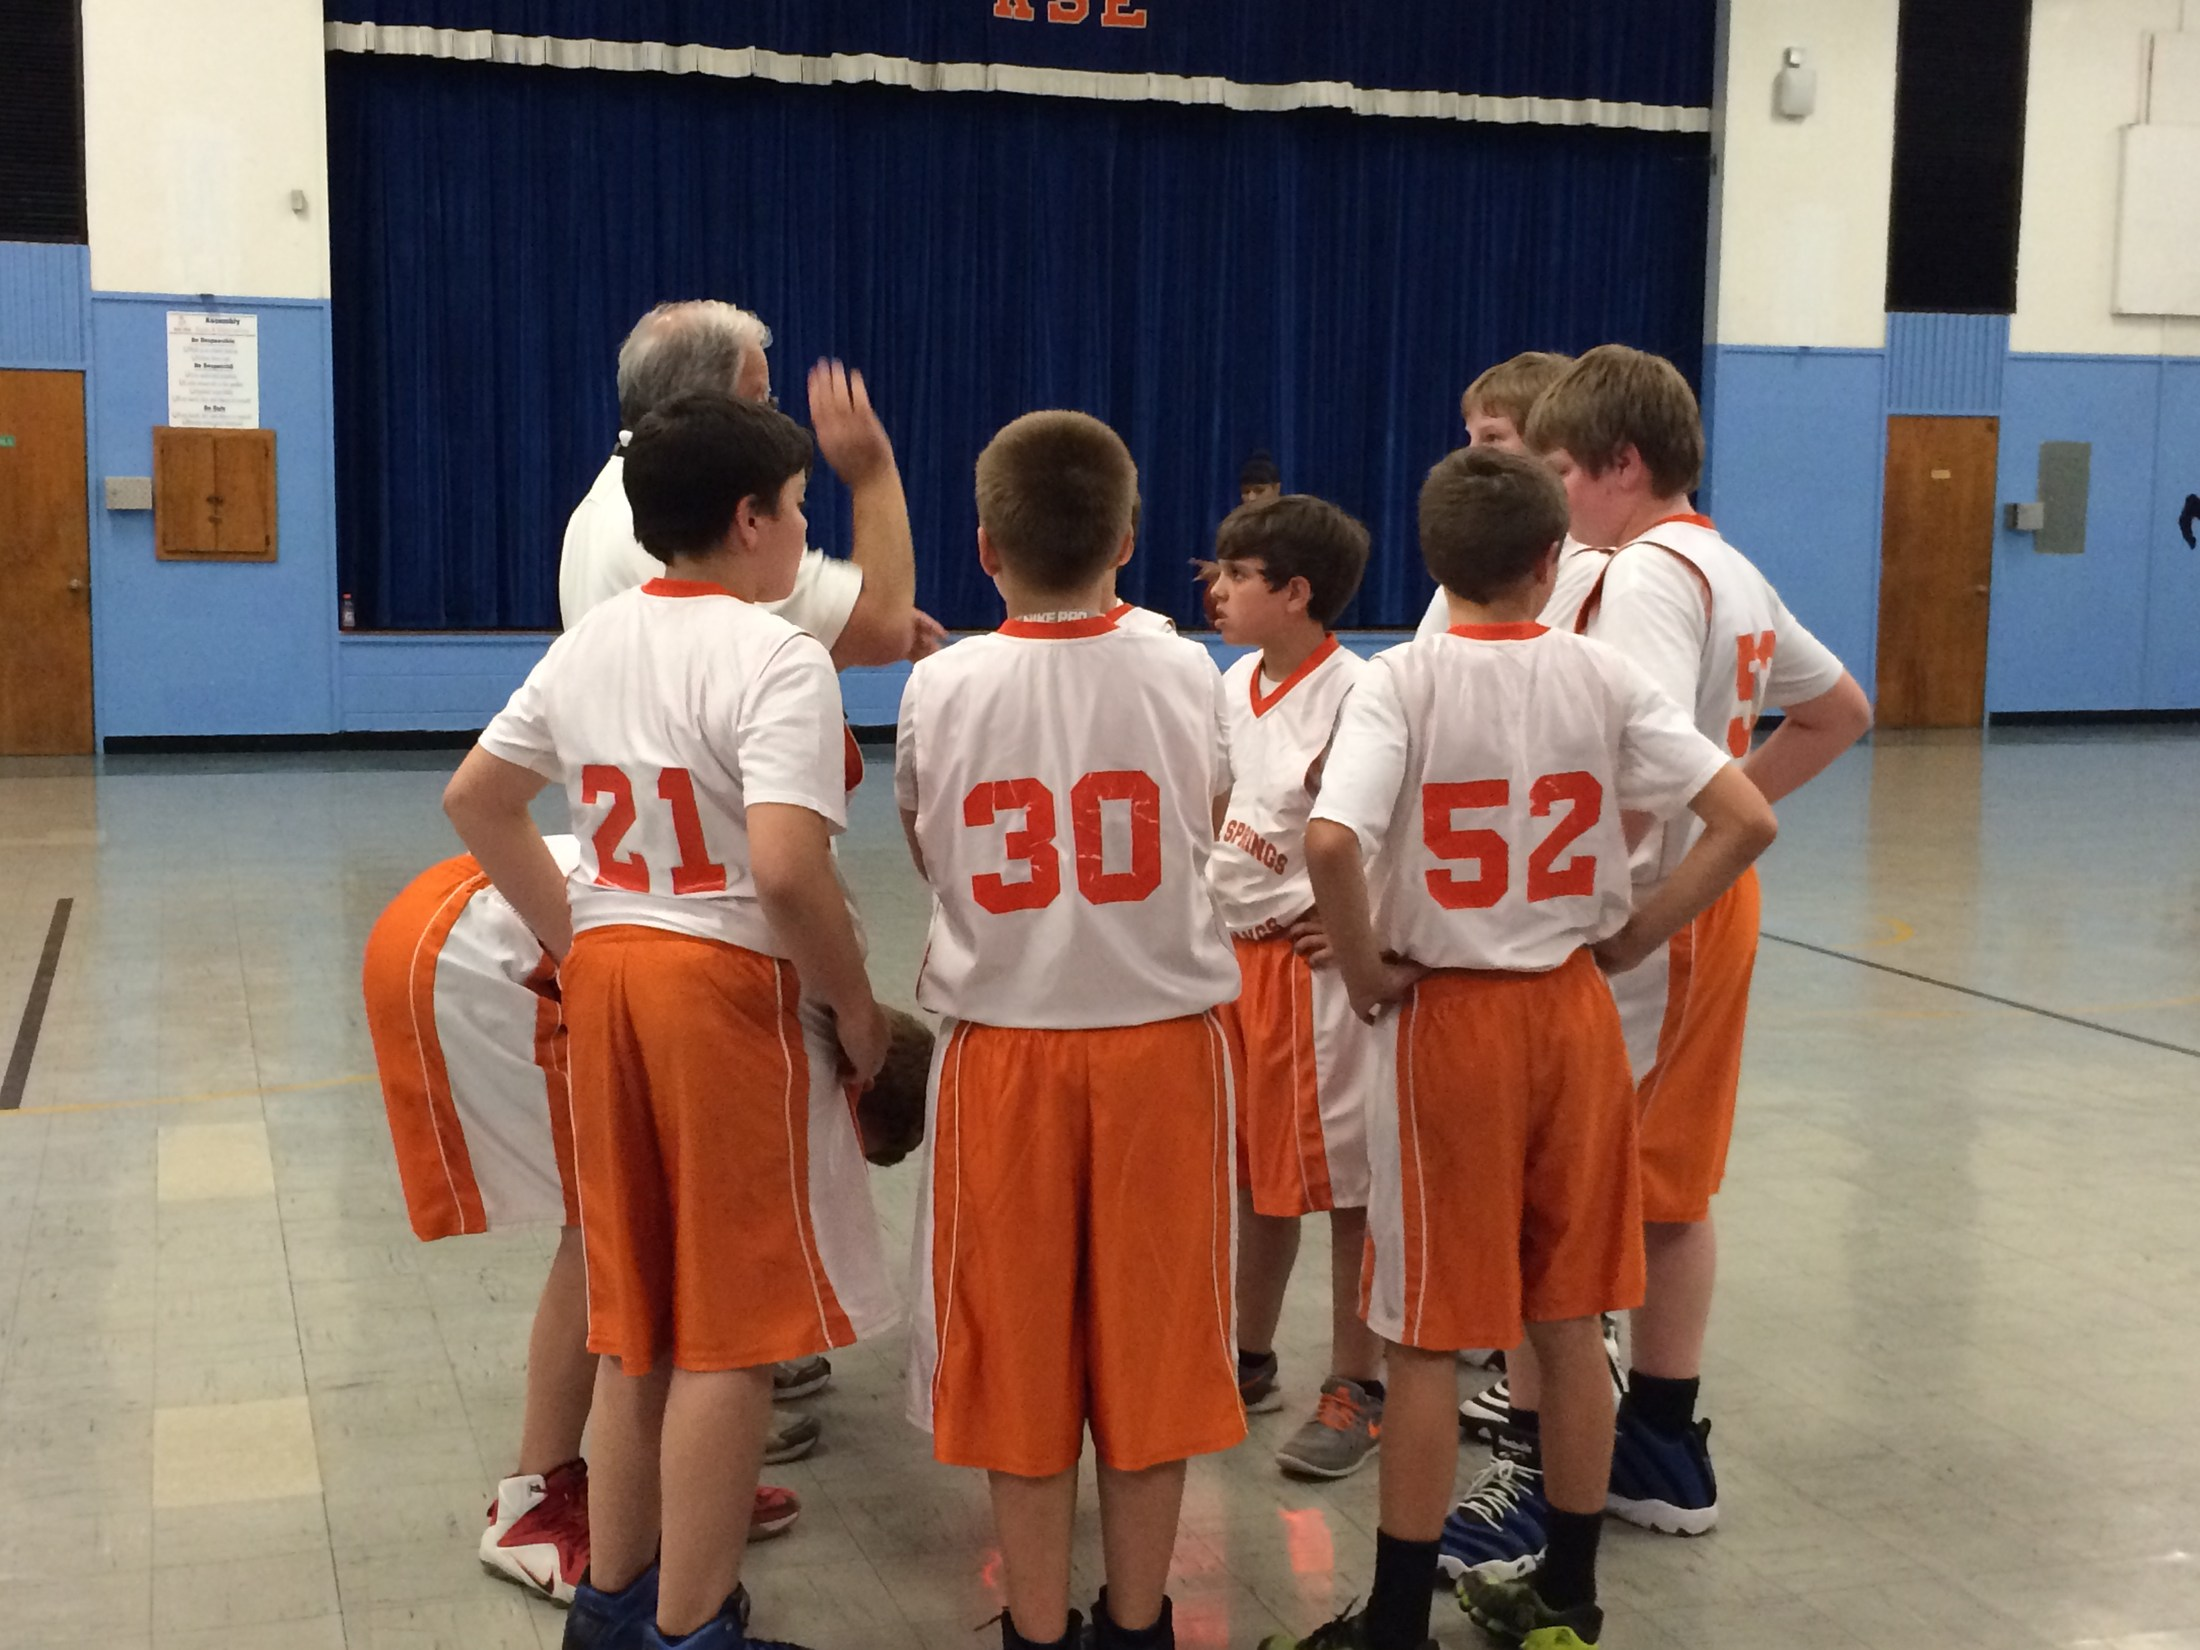 Boys with Coach huddle on court before game